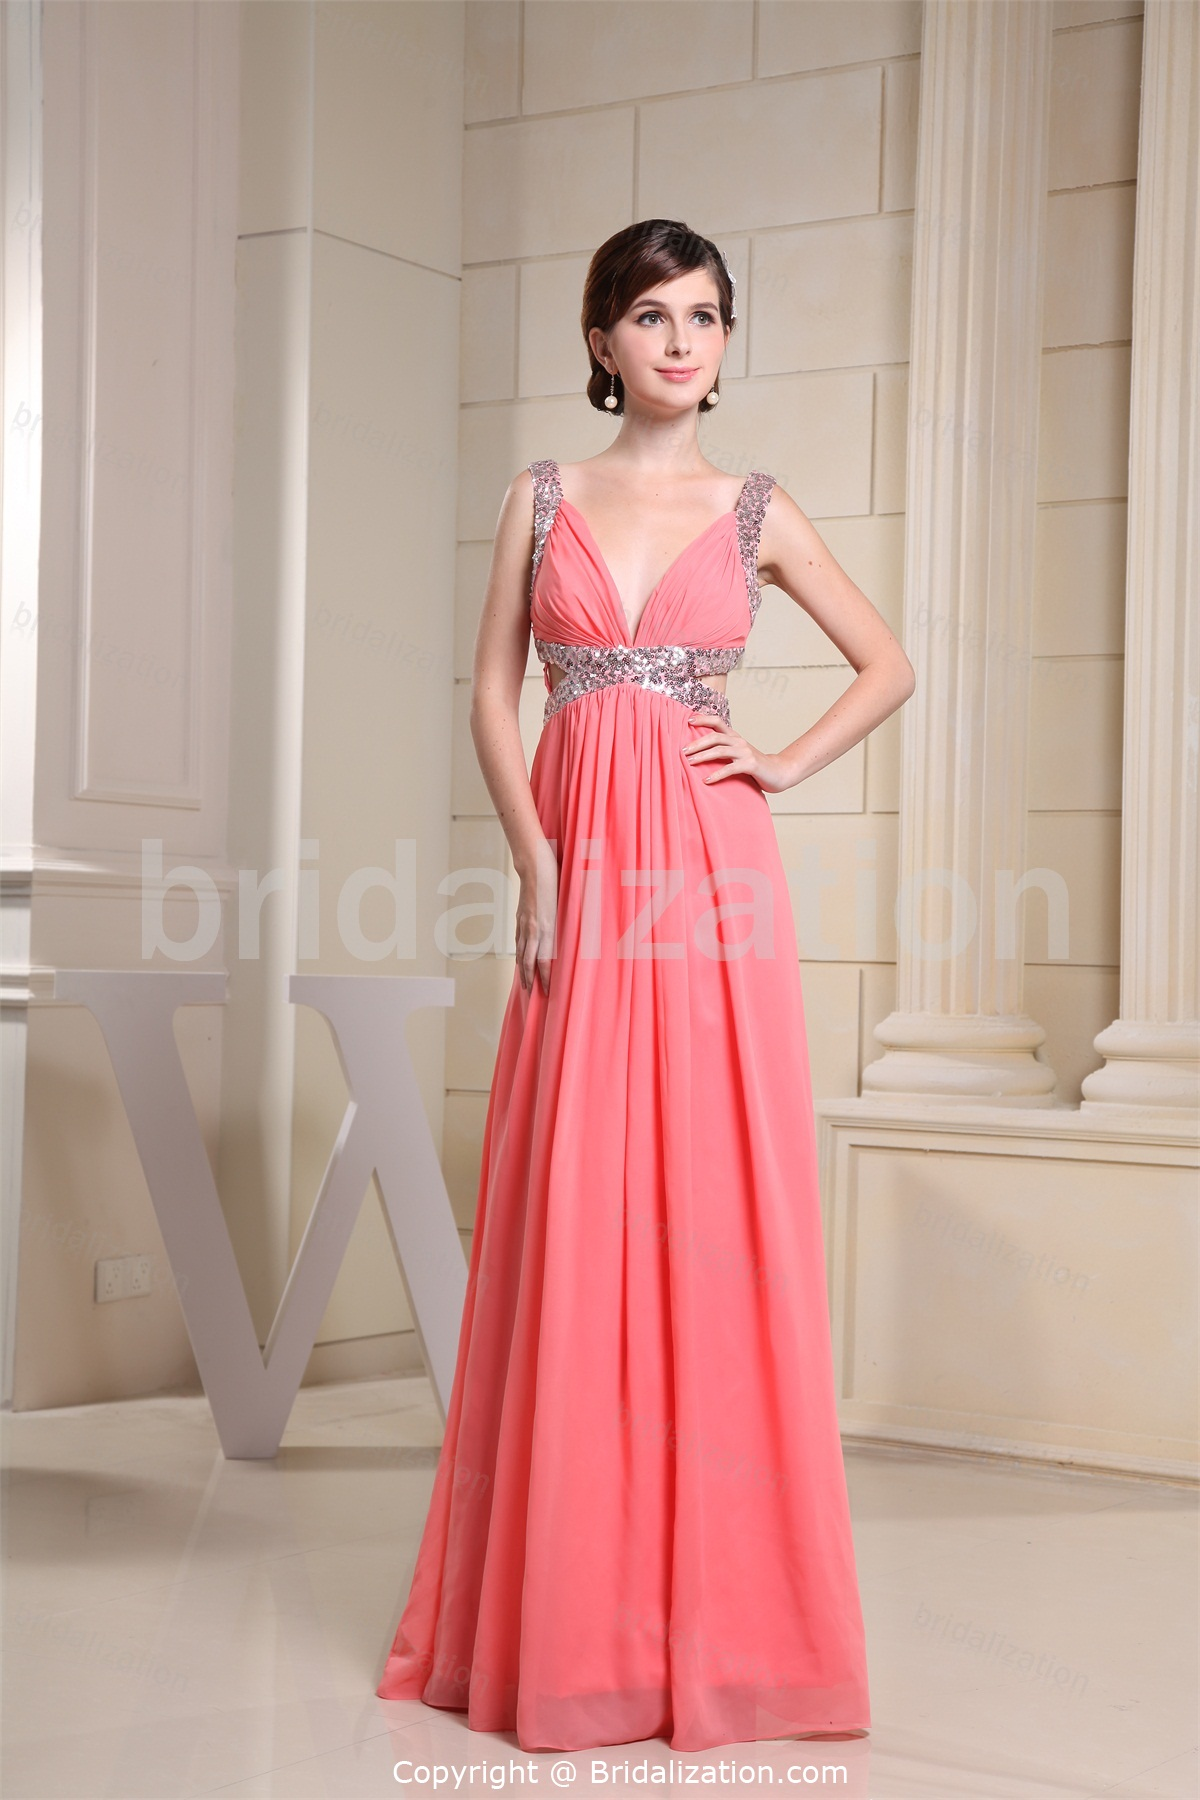 Women's Special Occasion Dresses | Dress images